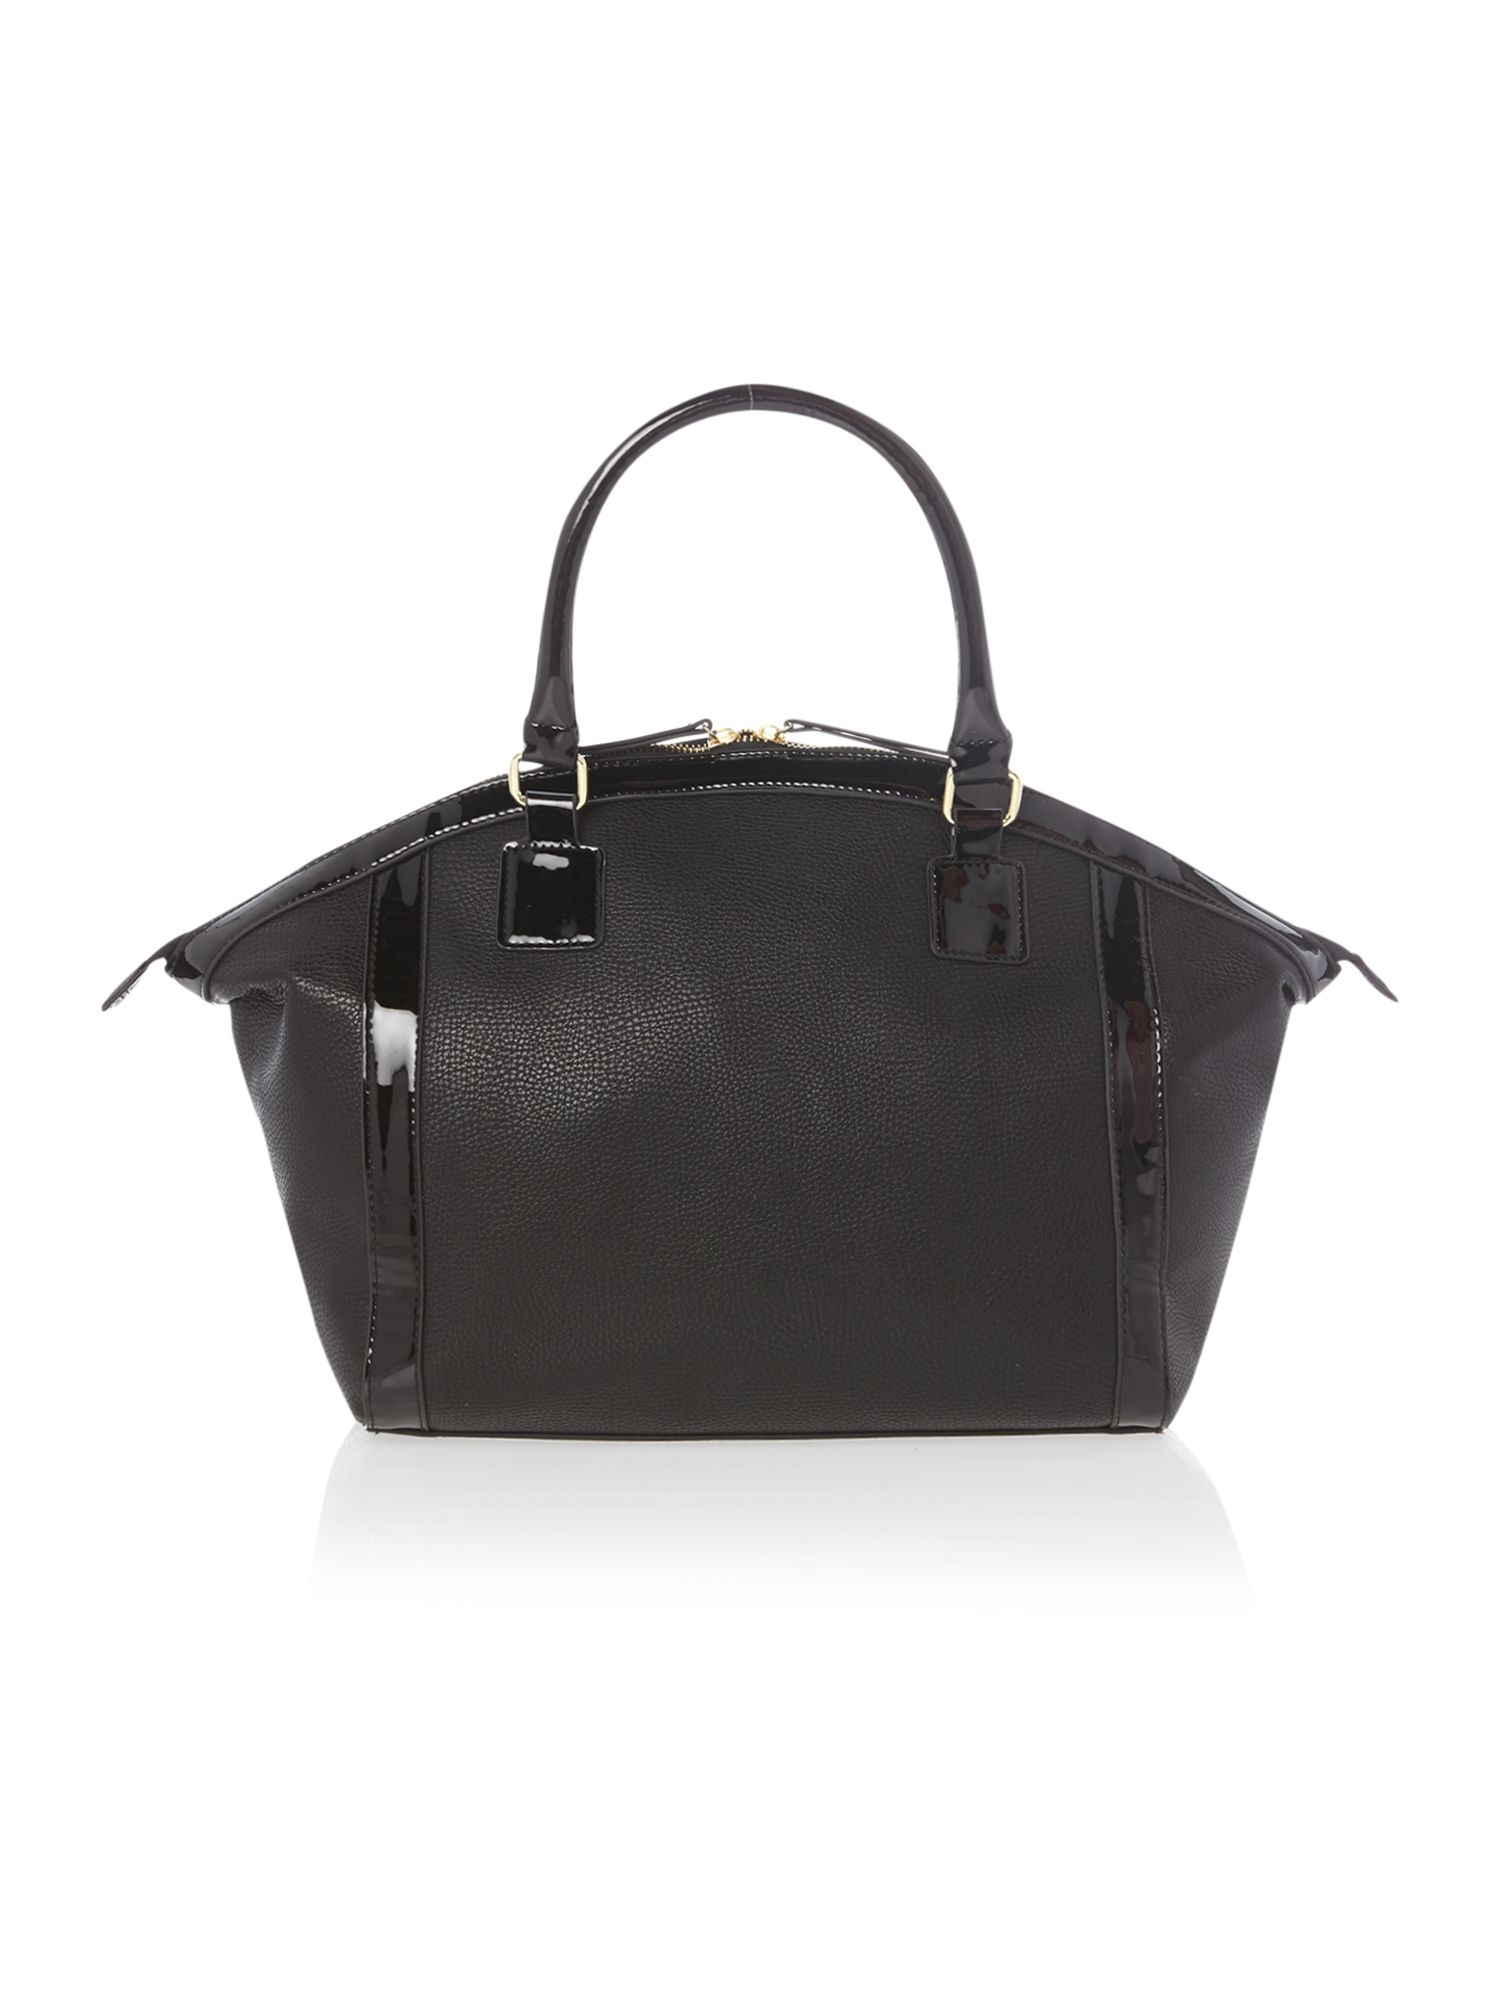 Erica winged bowler bag